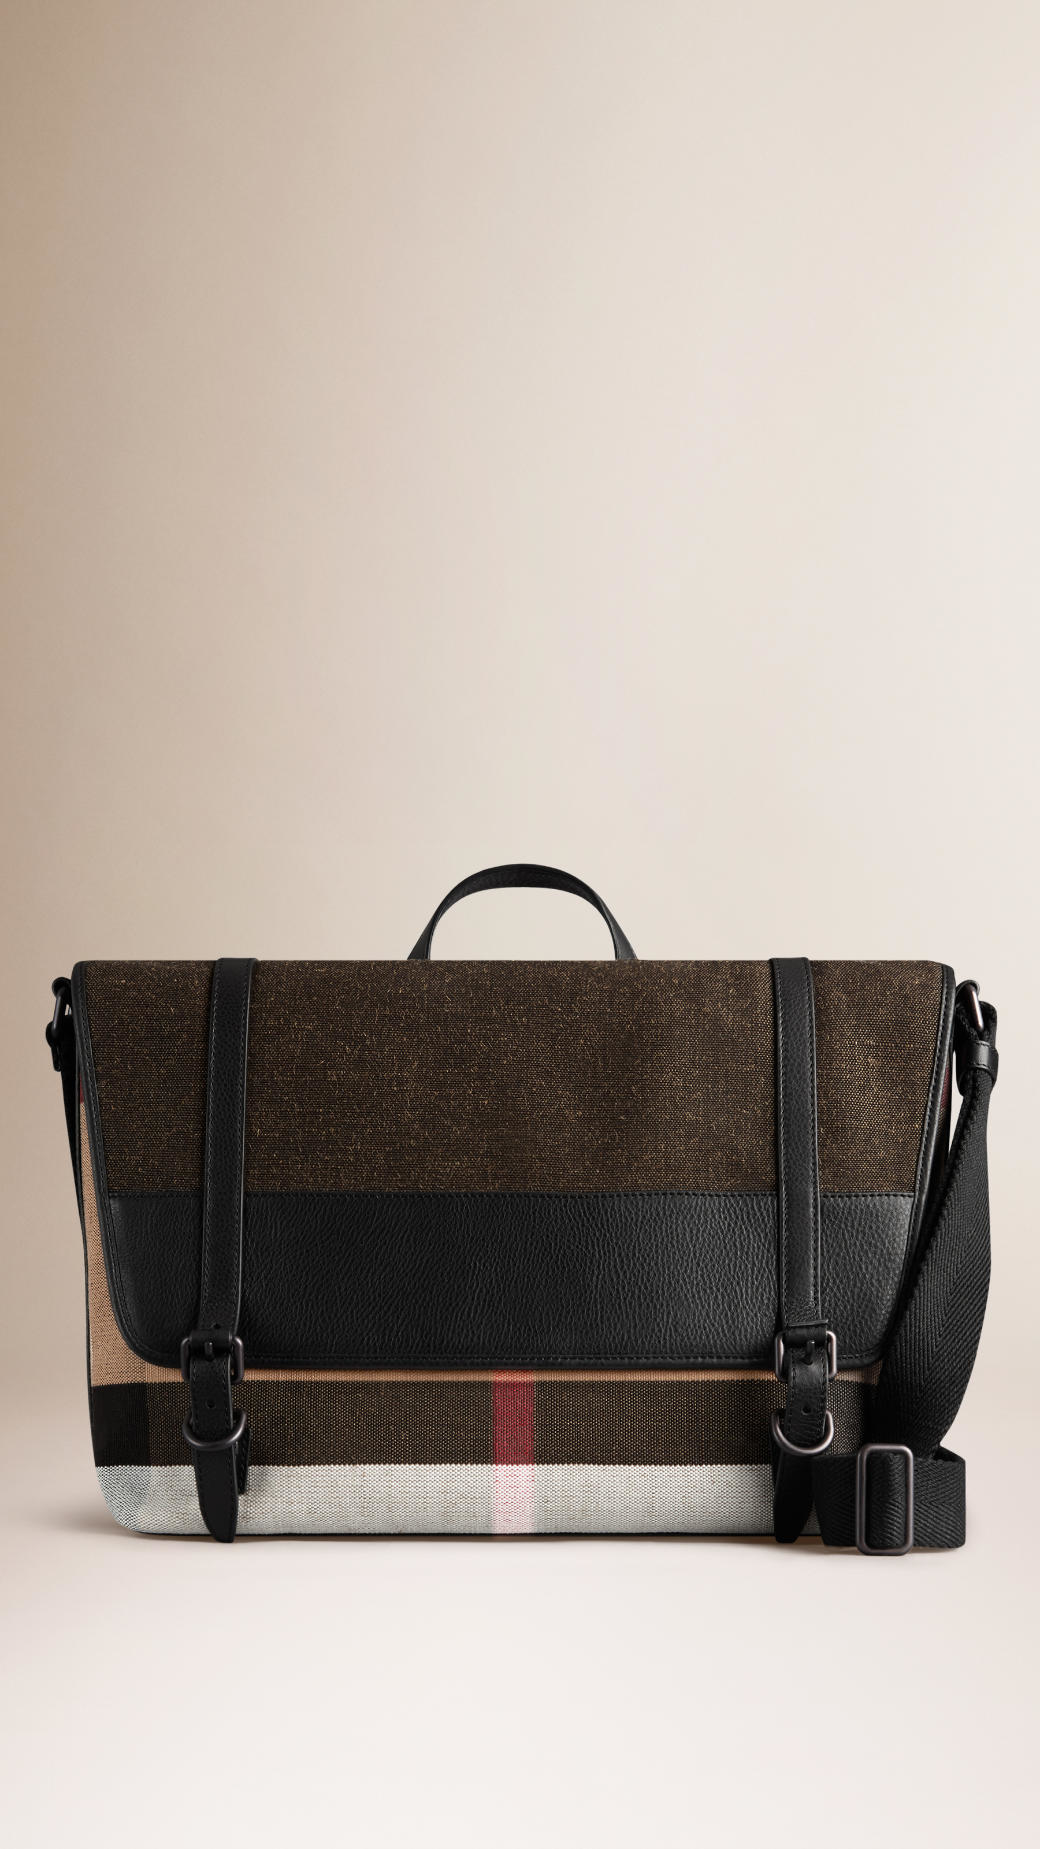 b5c597549ba2 Lyst - Burberry Canvas Check Messenger Bag in Black for Men